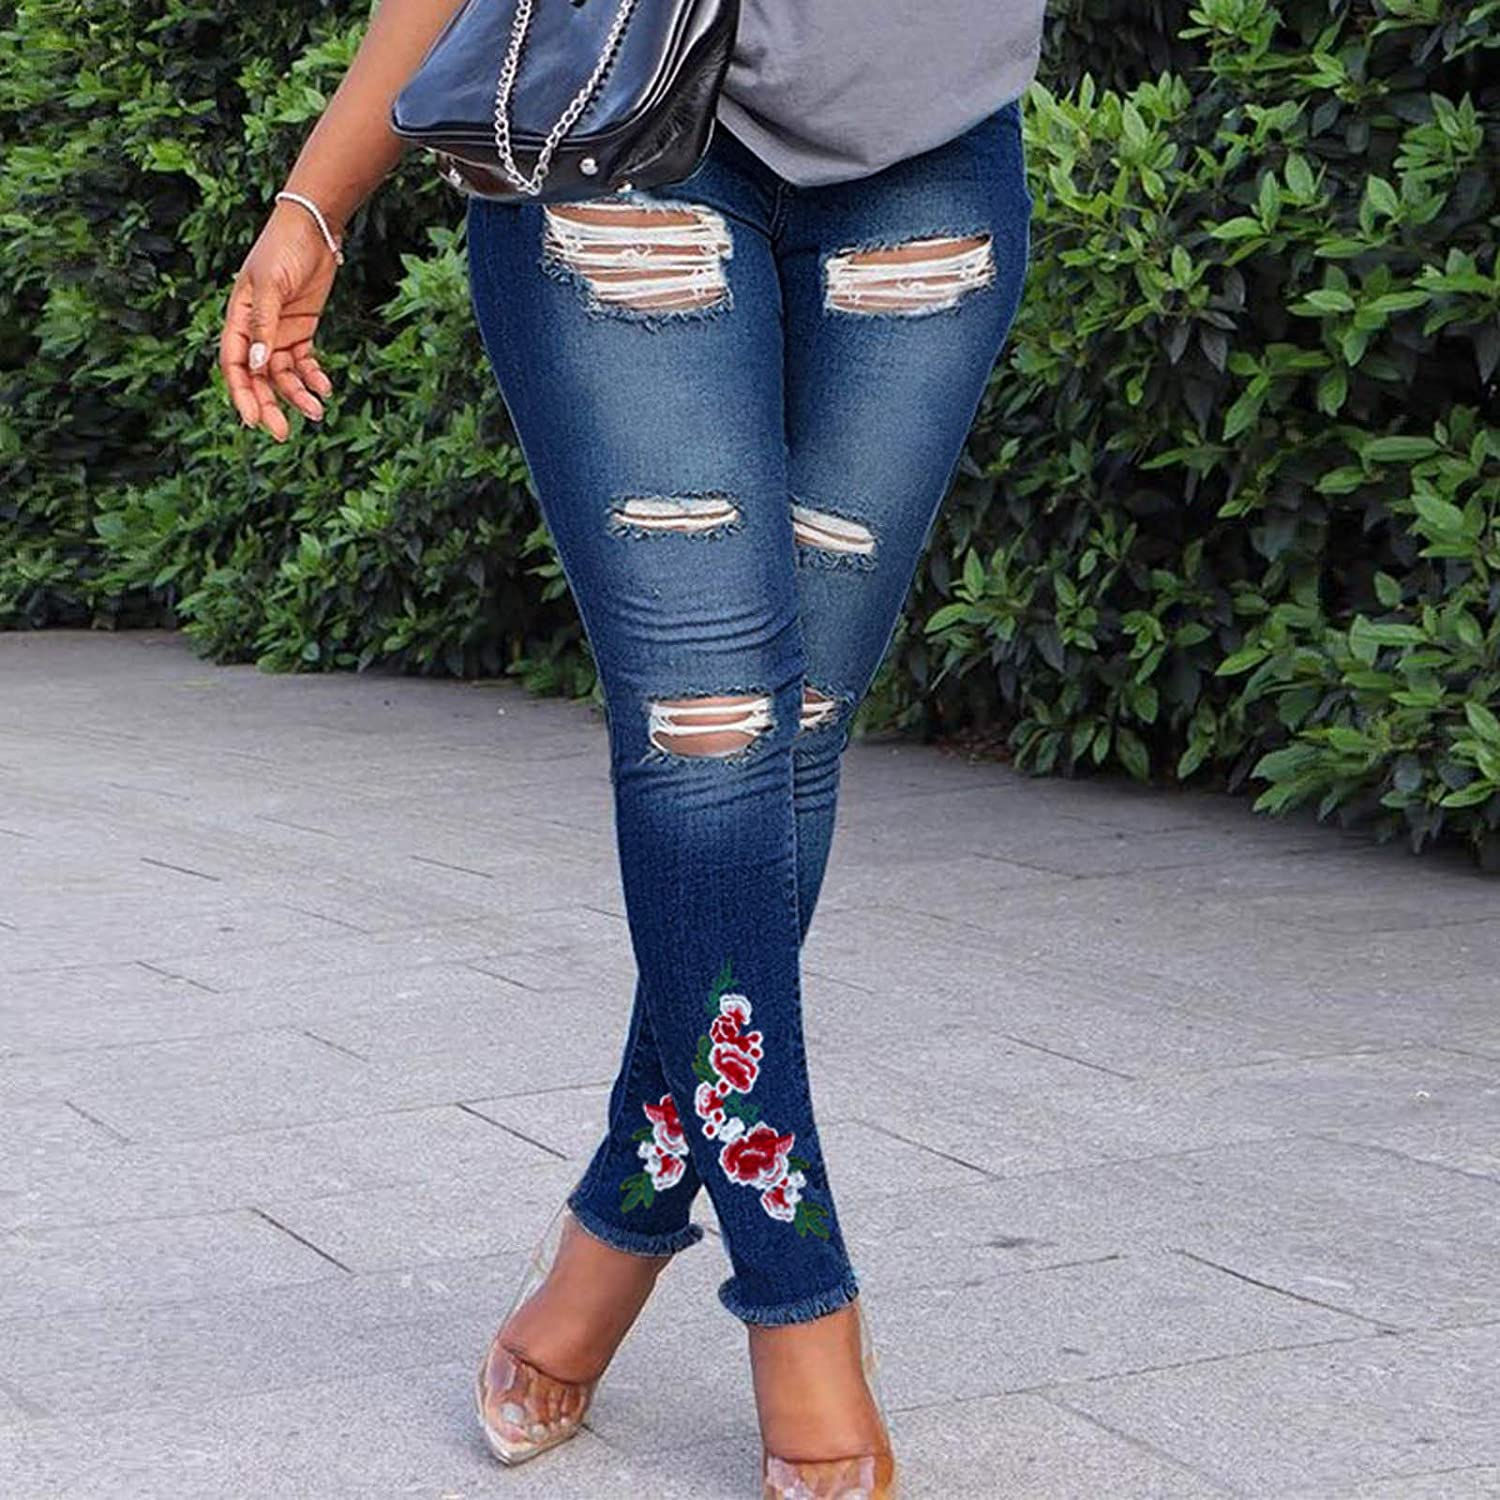 Women's Ripped Skinny Jeans Stretch Embroidered Floral LIM Denim Pants with Pockets